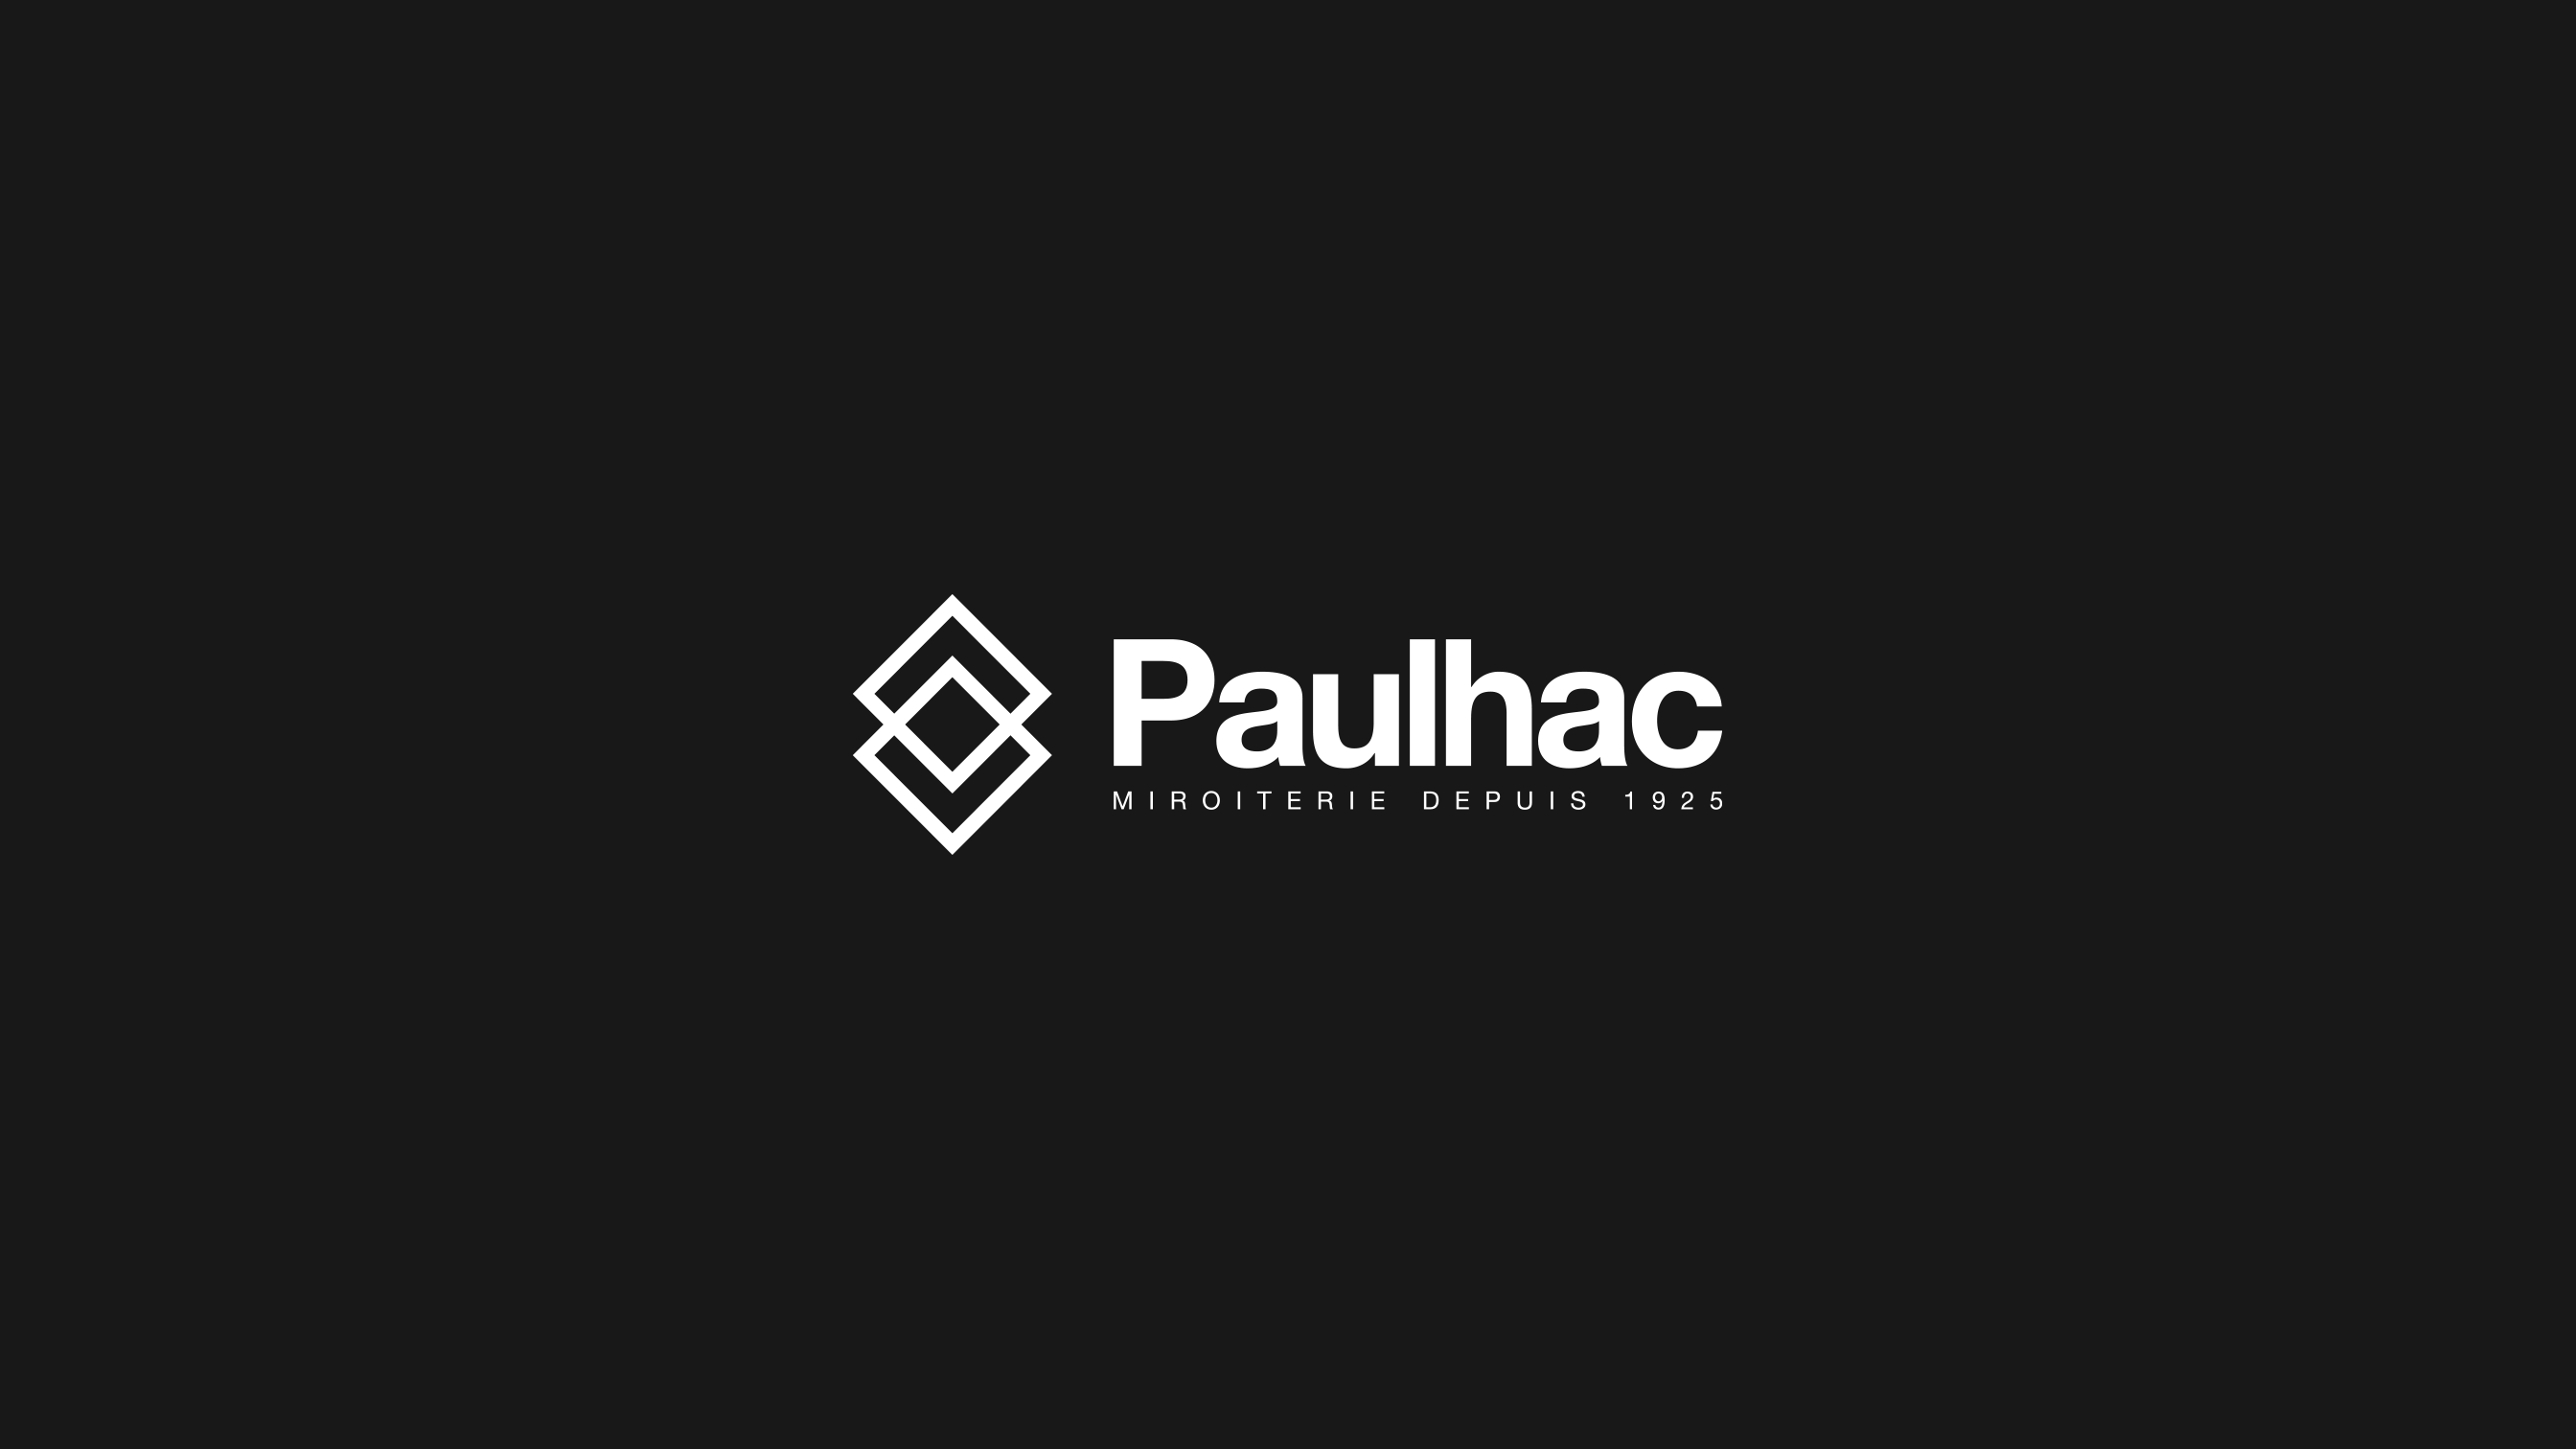 showcase-logotype-paulhac